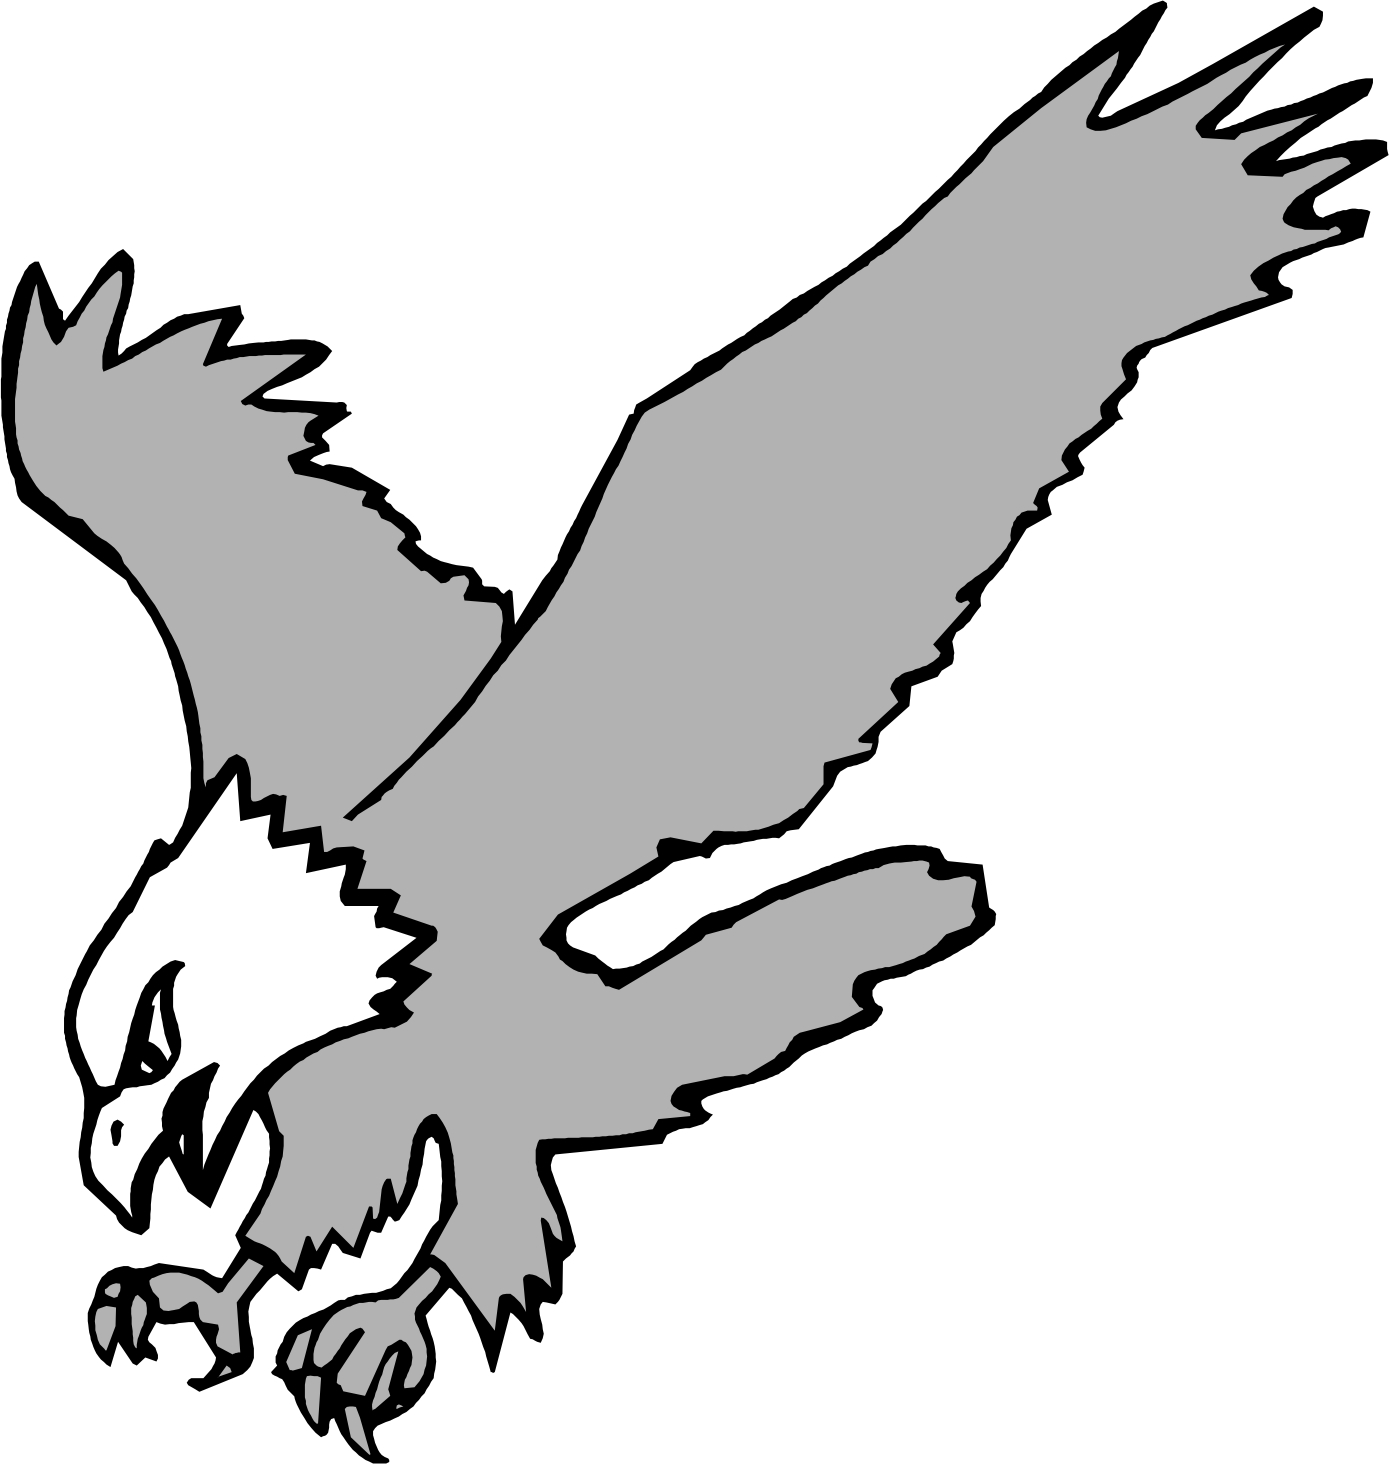 eagle cartoon images free cliparts that you can download to you ...